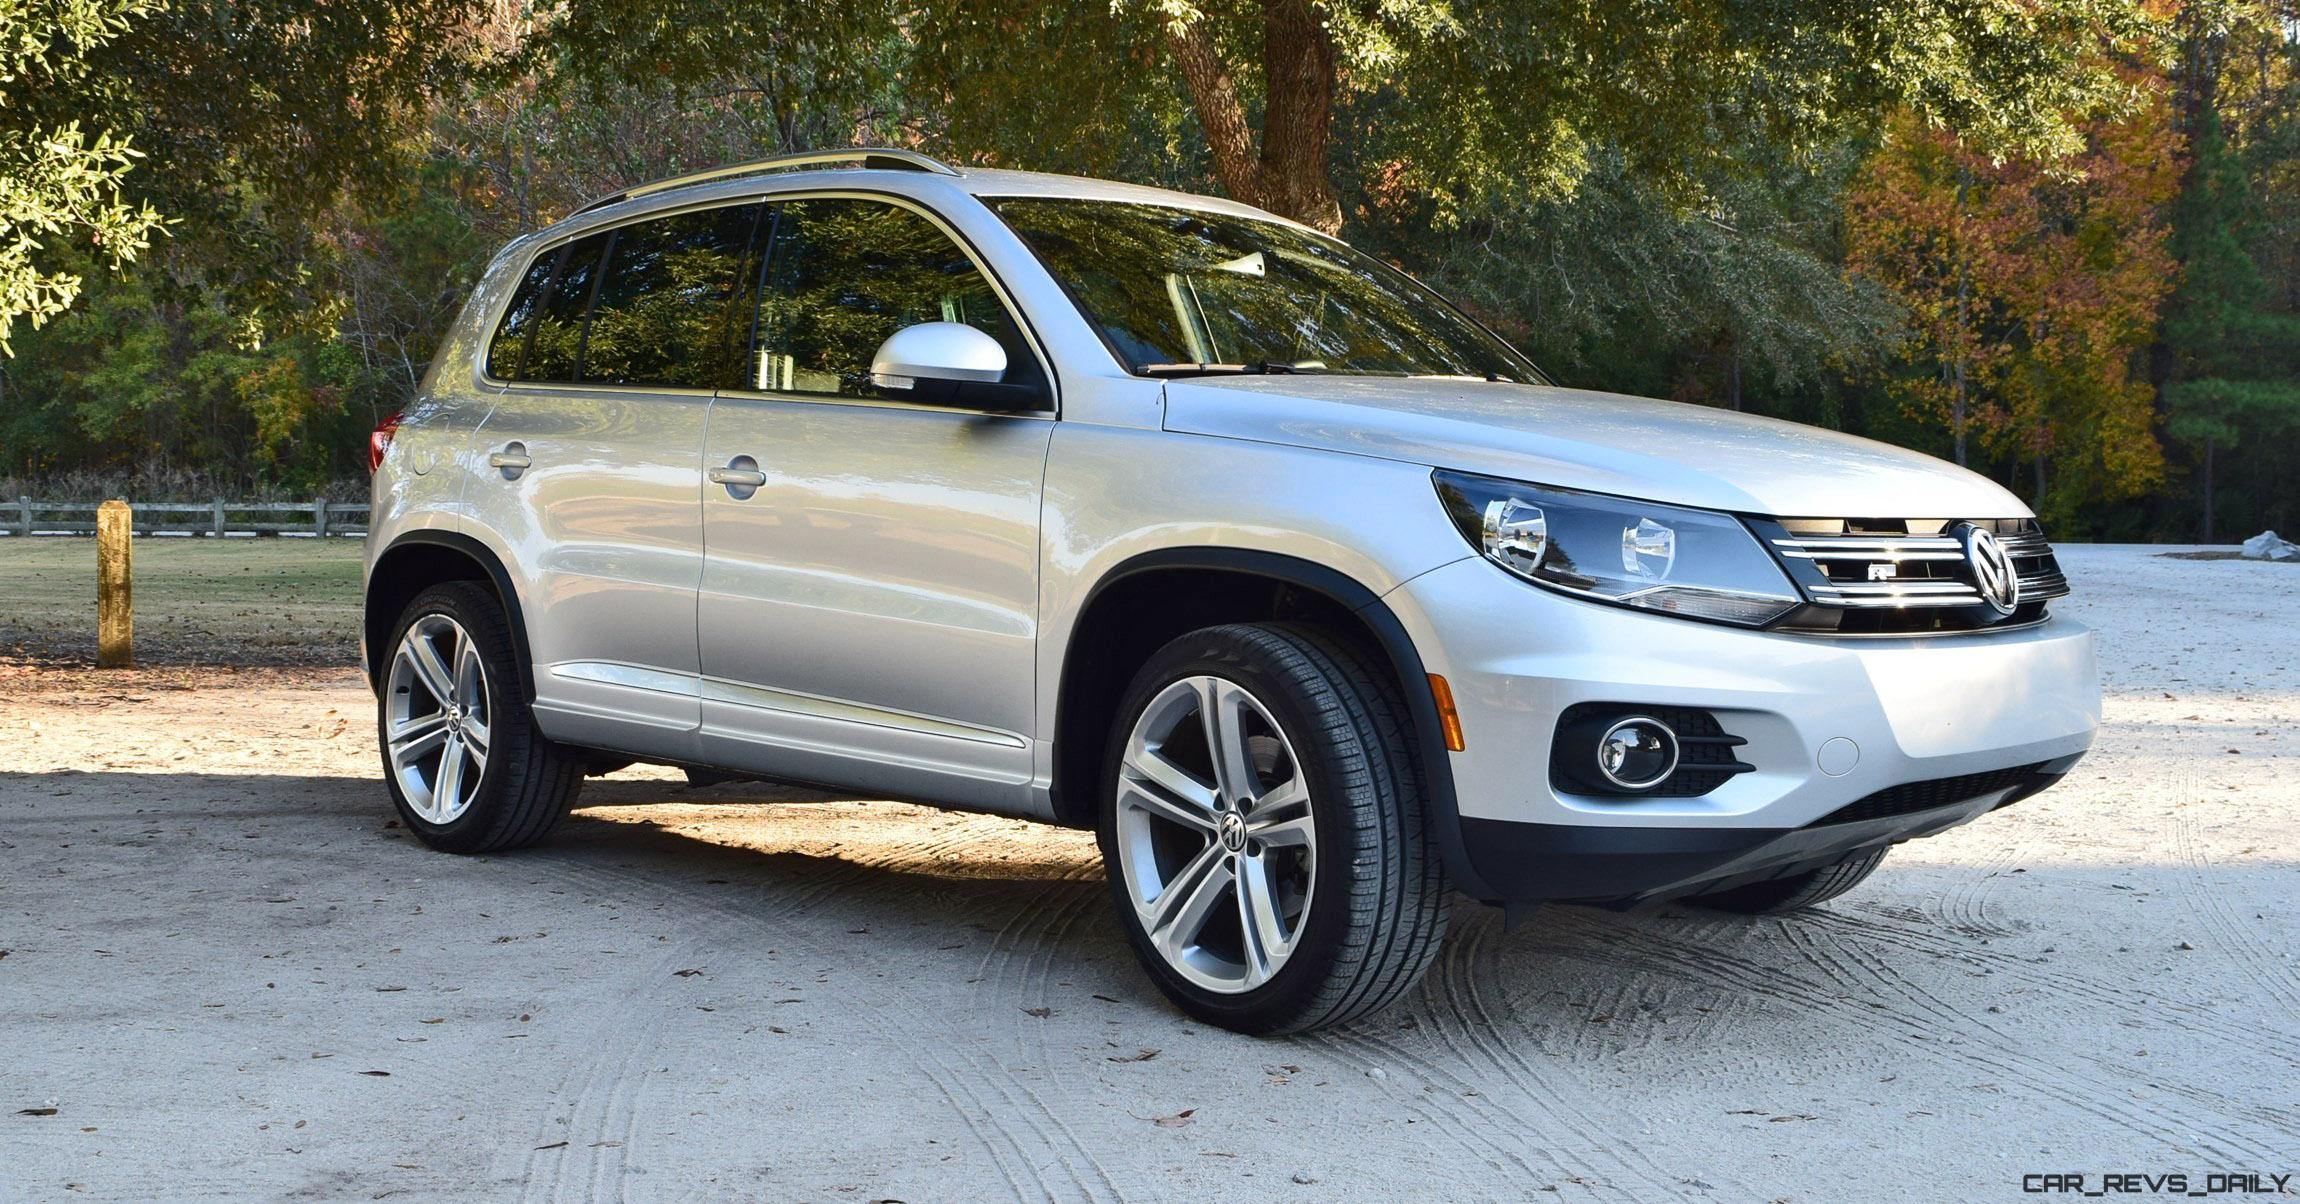 motor detroit car events news active charges vw gte hybrid volkswagen tiguan shows into suv show on concept more info